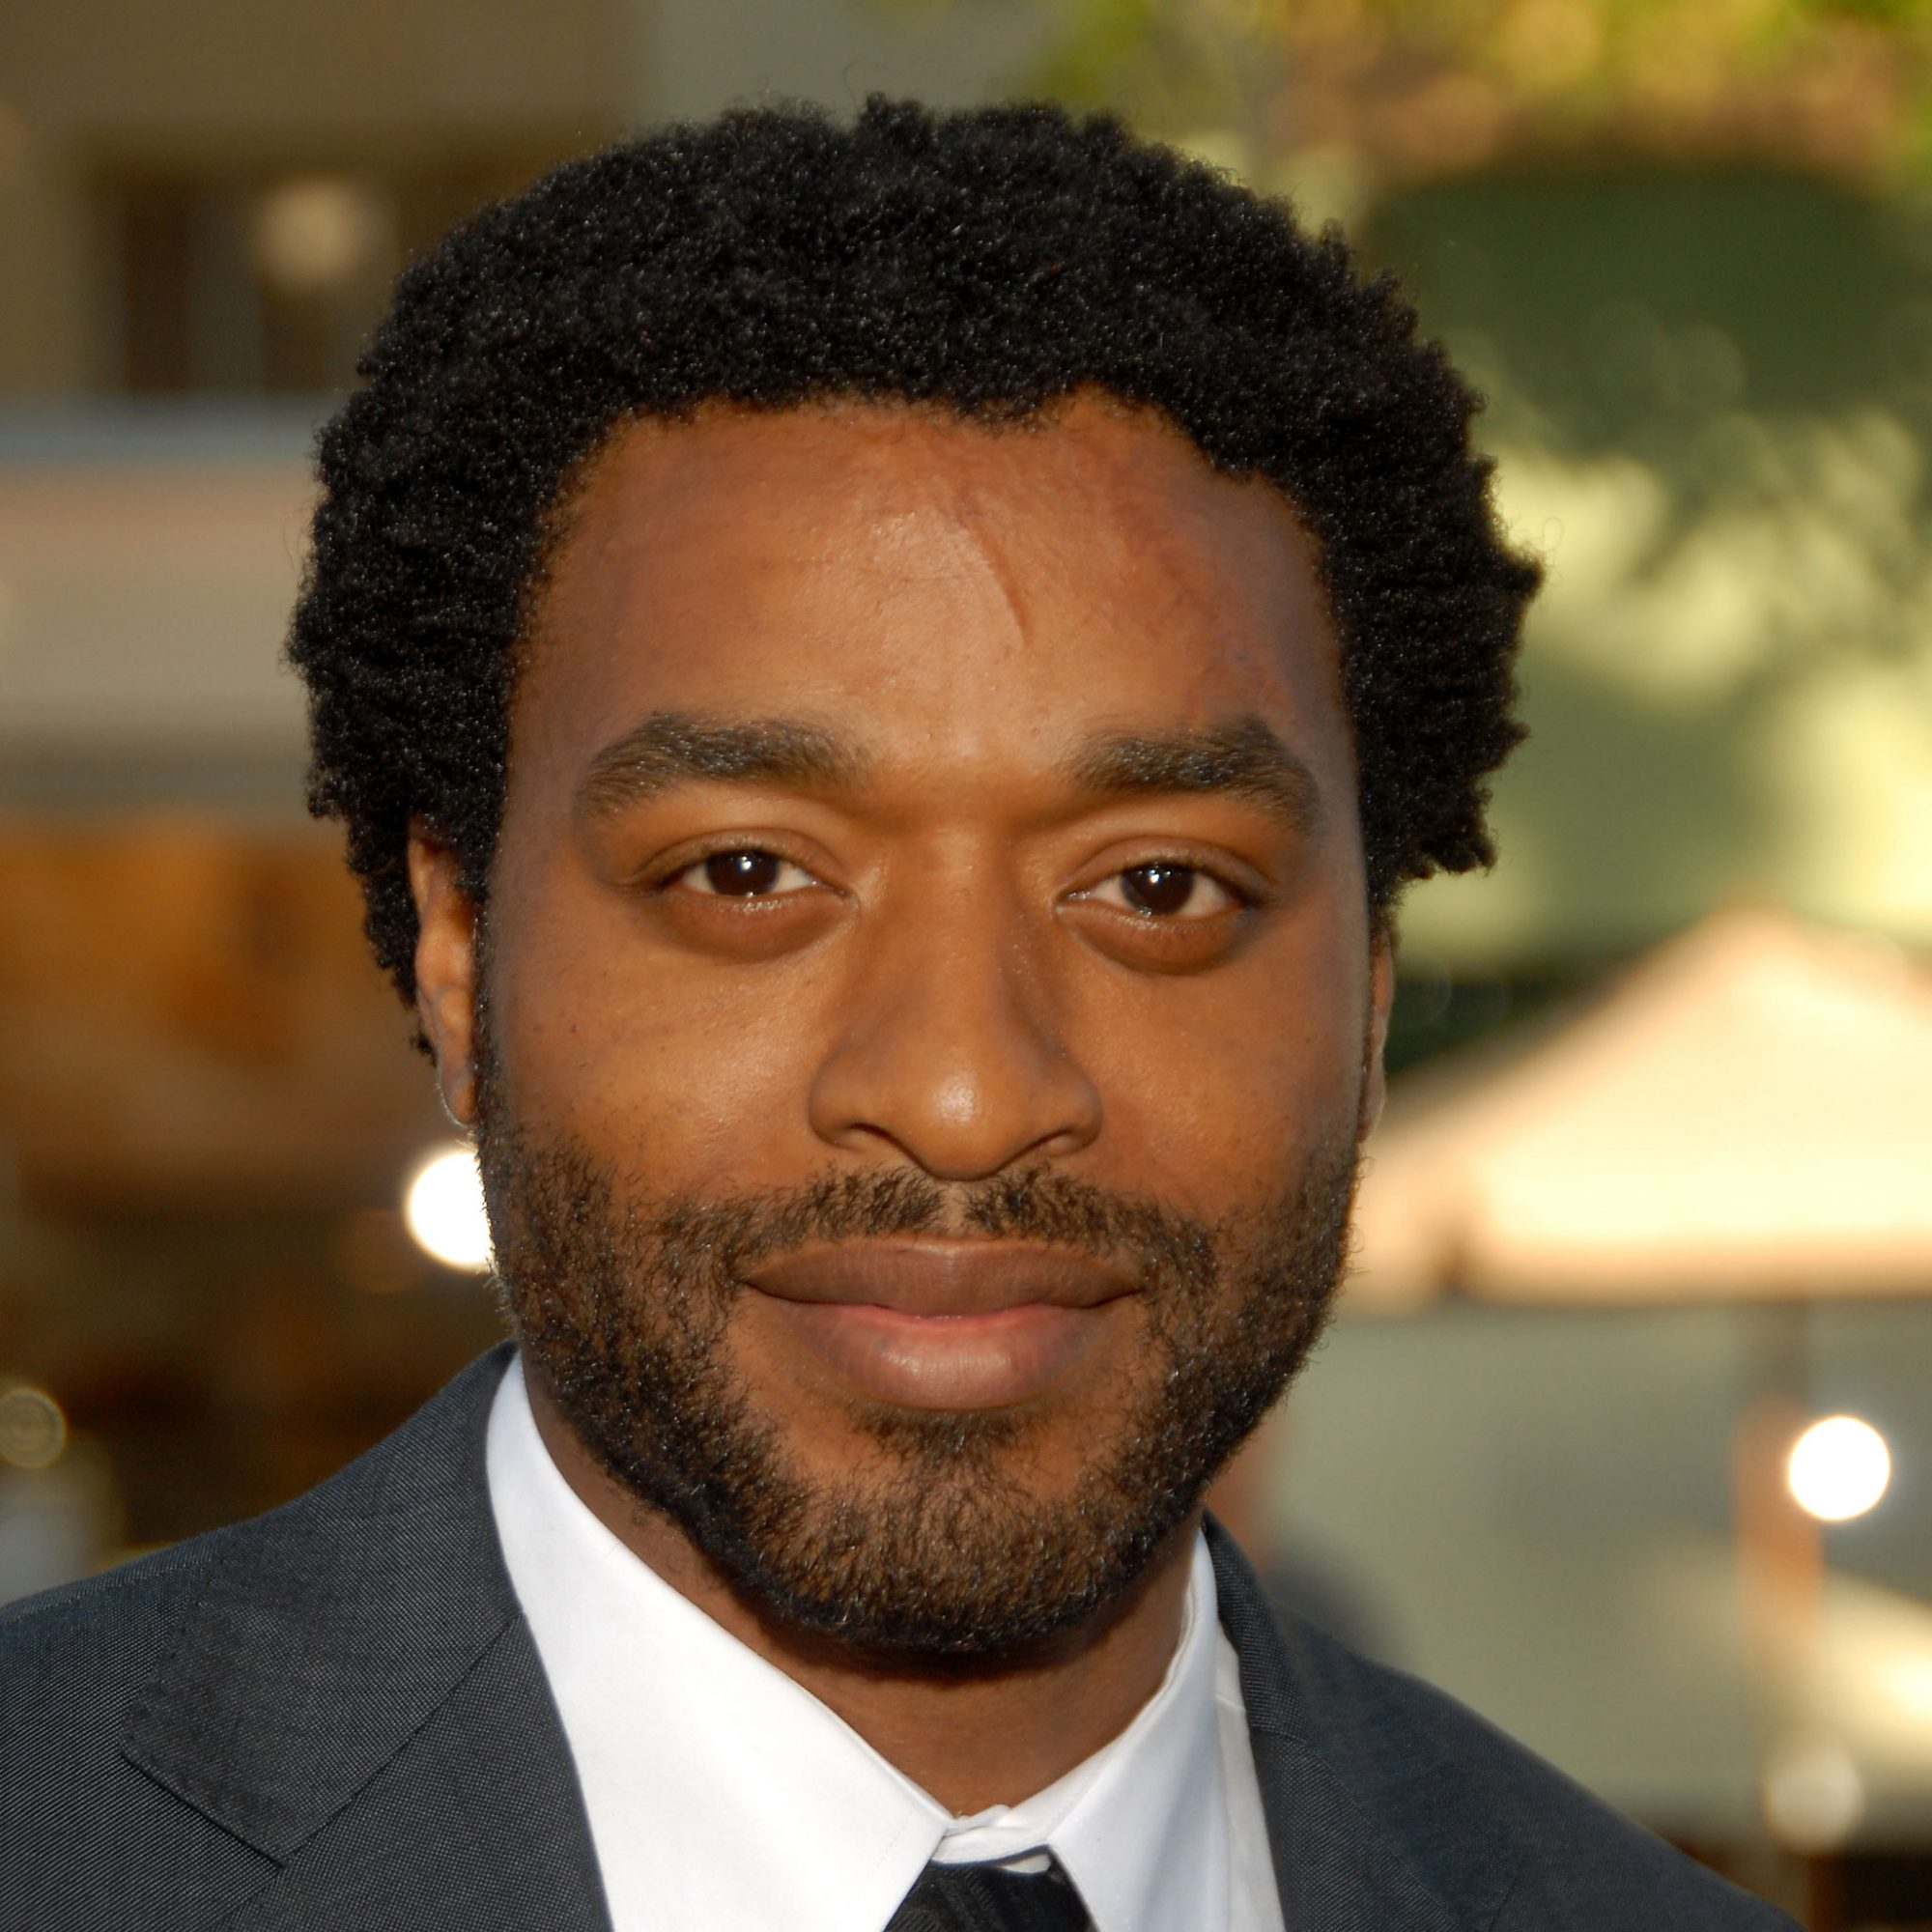 FWX FIVE NAMES TO KNOW OSCARS CHIWETEL EJIOFOR